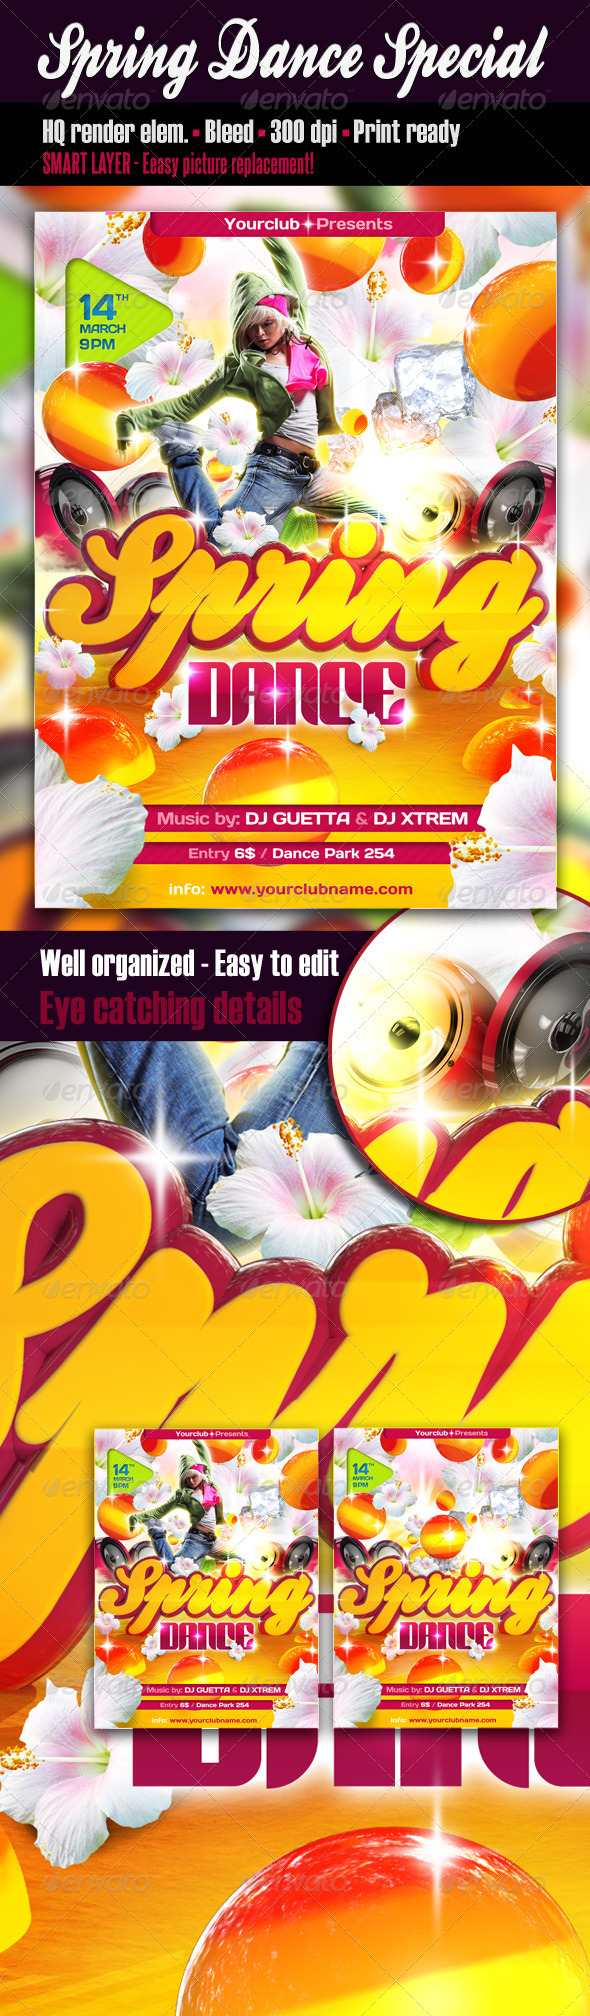 Spring Dance Special Flyer - Clubs & Parties Events